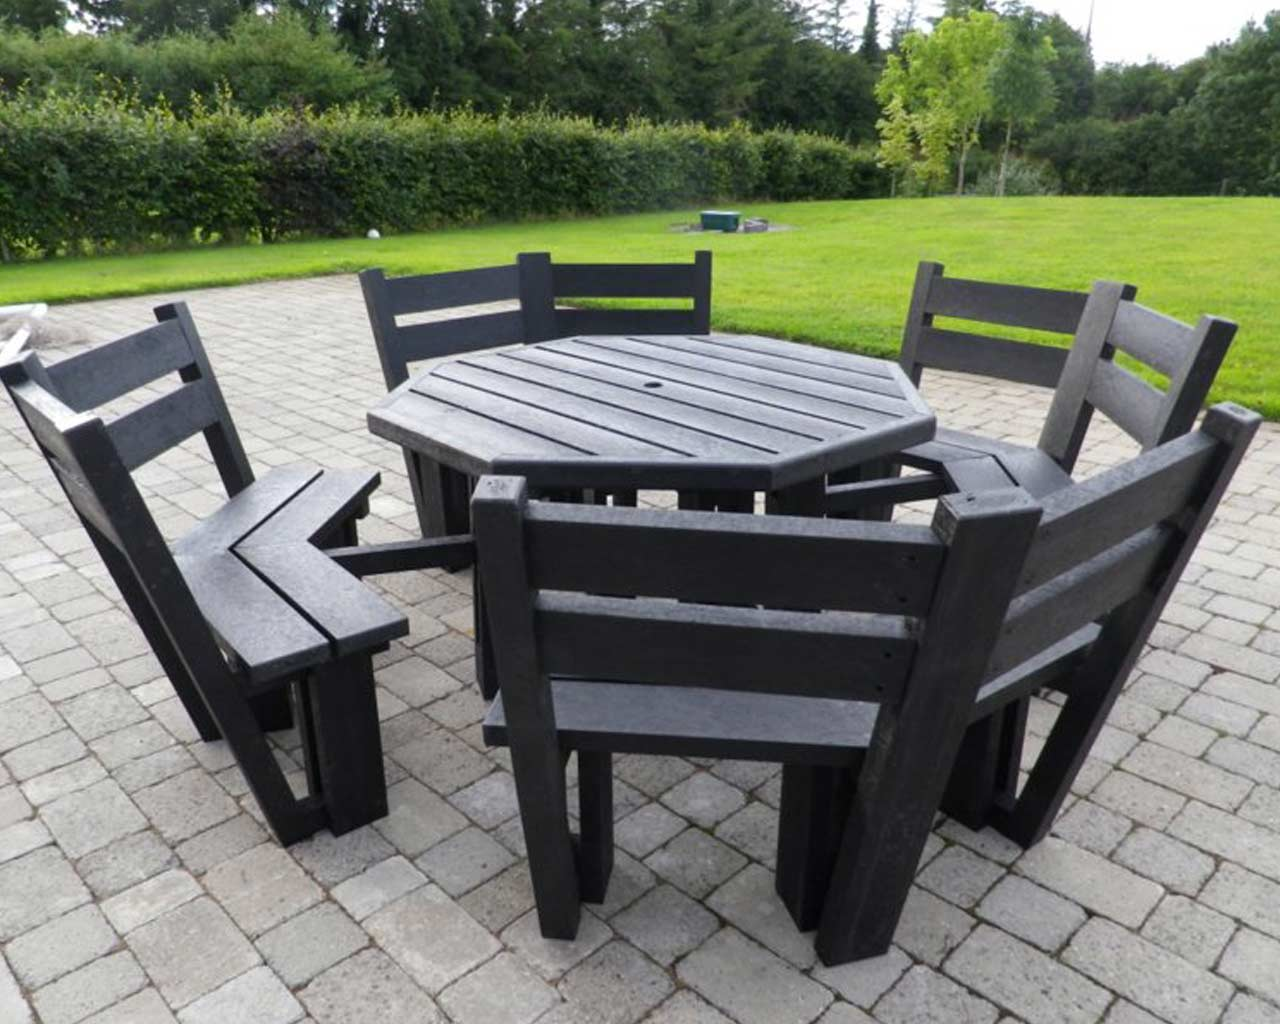 Pvc Picnic Table Images Bar Height Dining Table Set